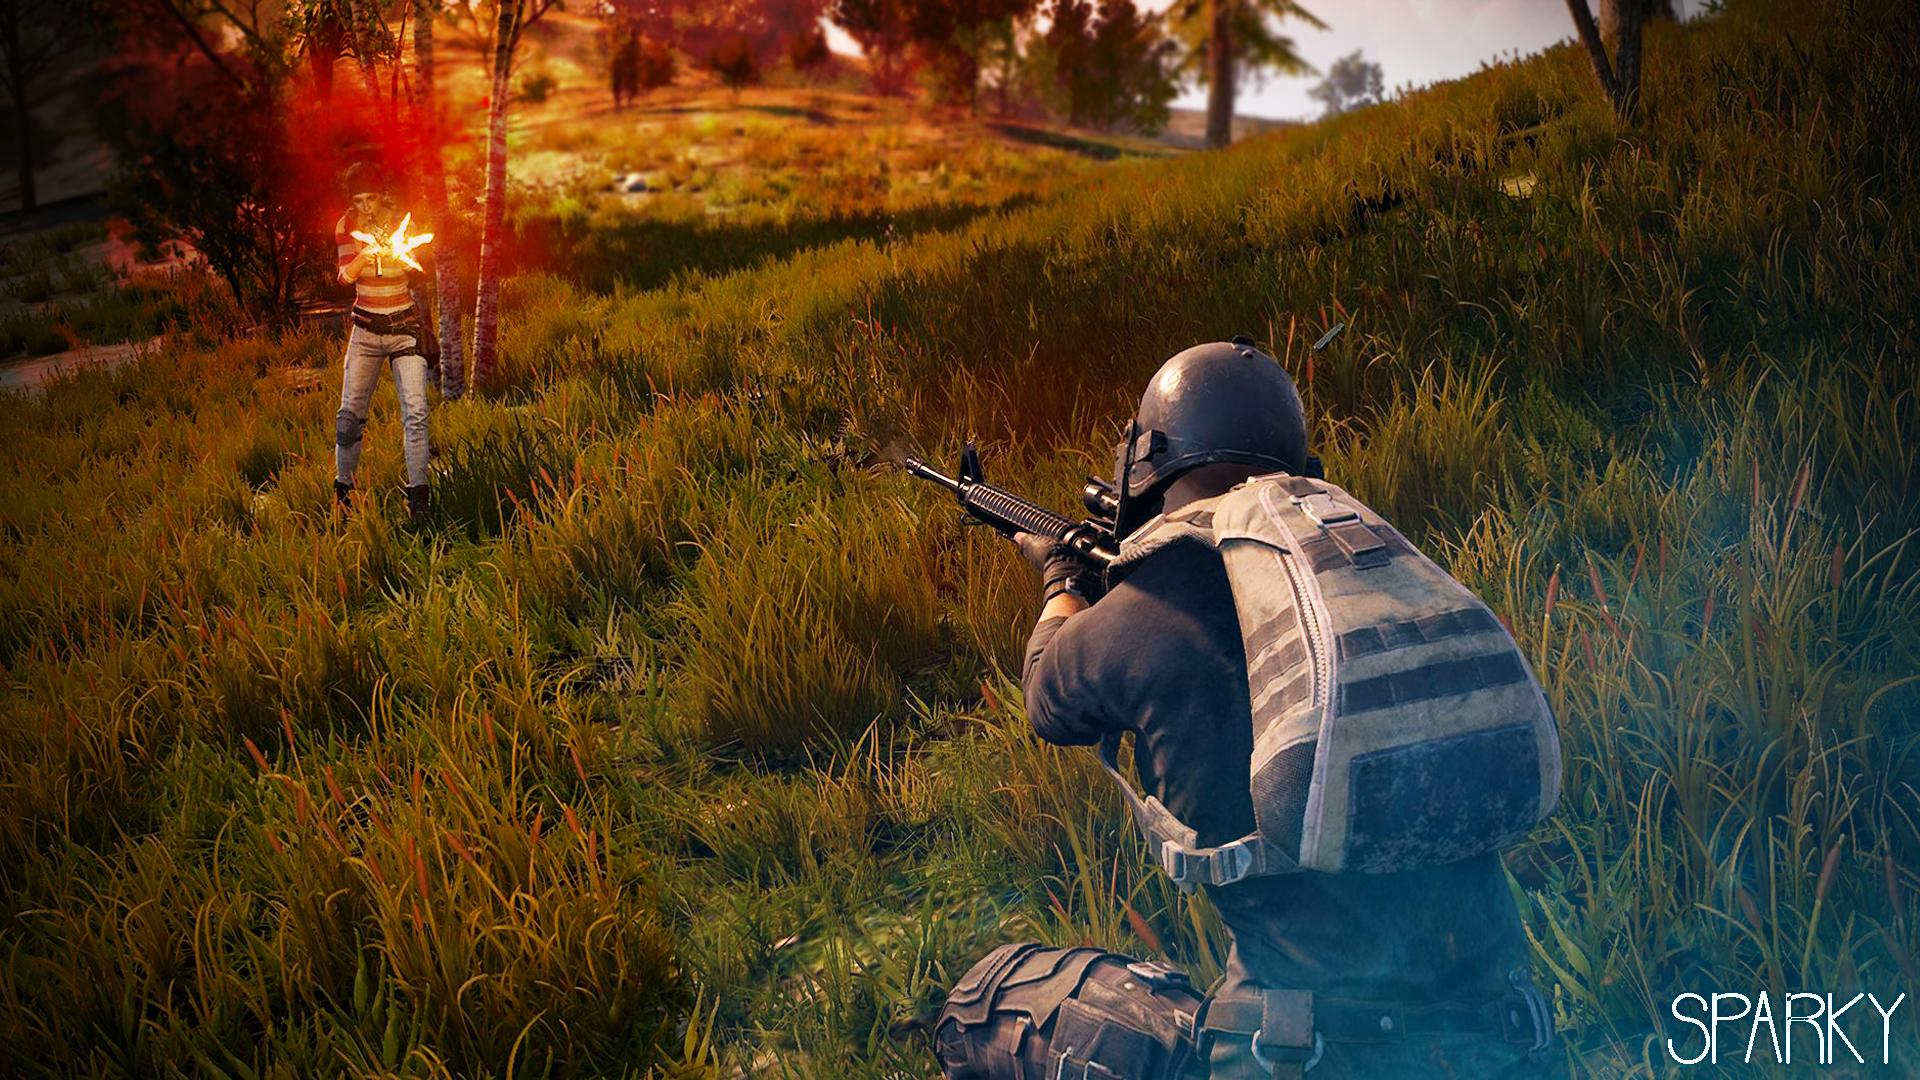 Pubg Wallpaper Home: PUBG Has Officially Sold Over 10 Million Copies